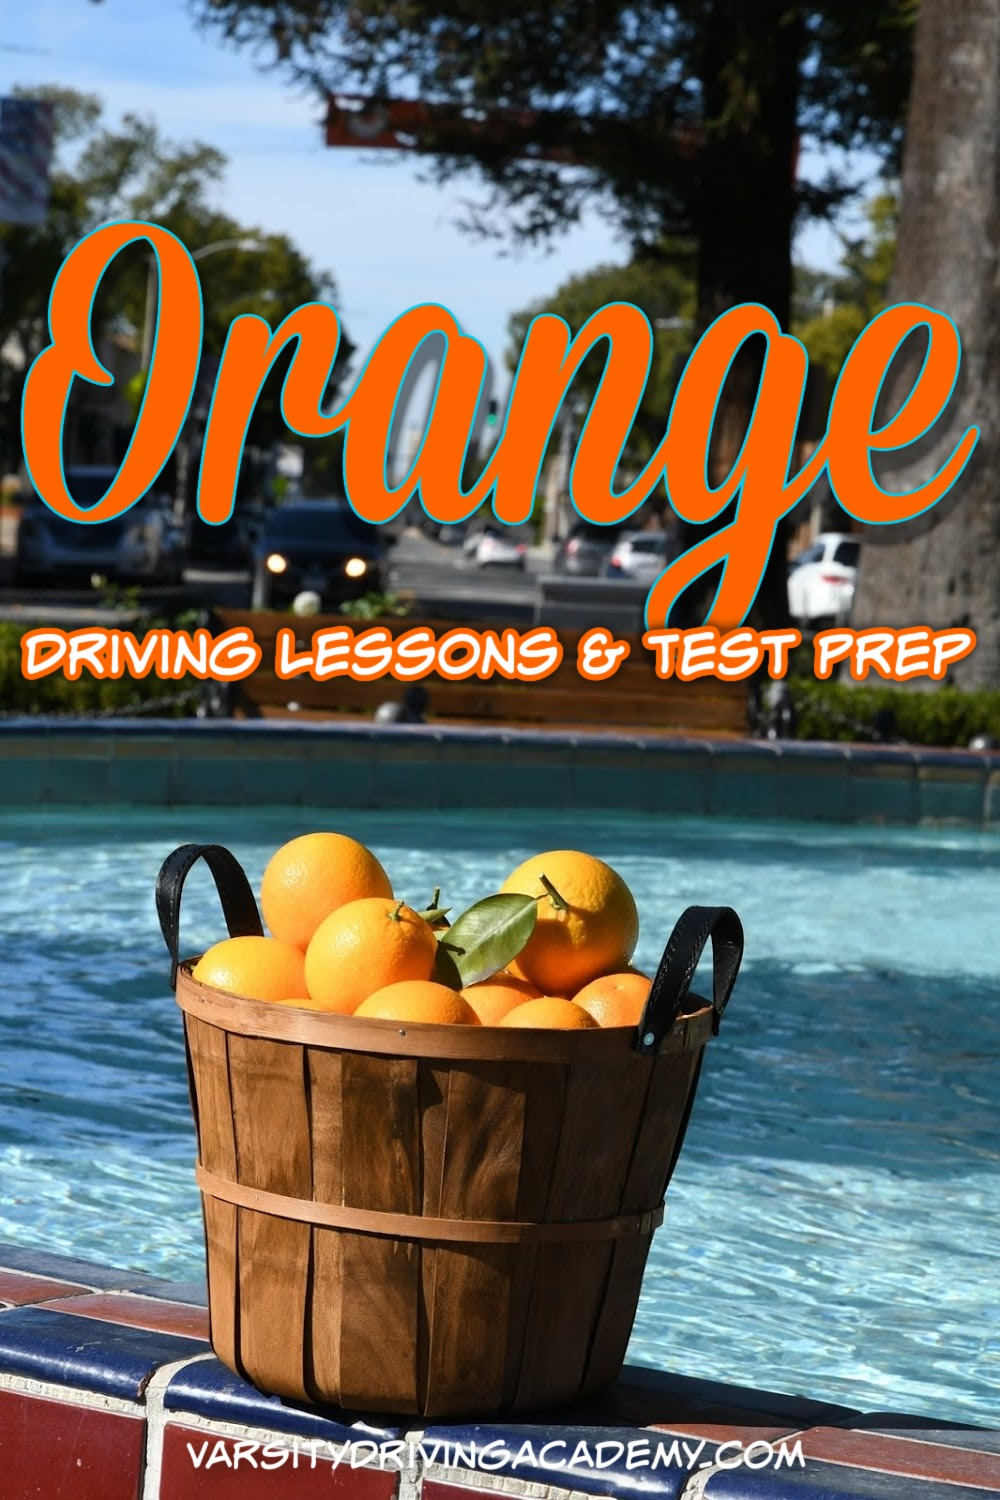 Varsity Driving Academy is ready to help you prep for your driving test with the best Orange driving lessons for teens and adults.